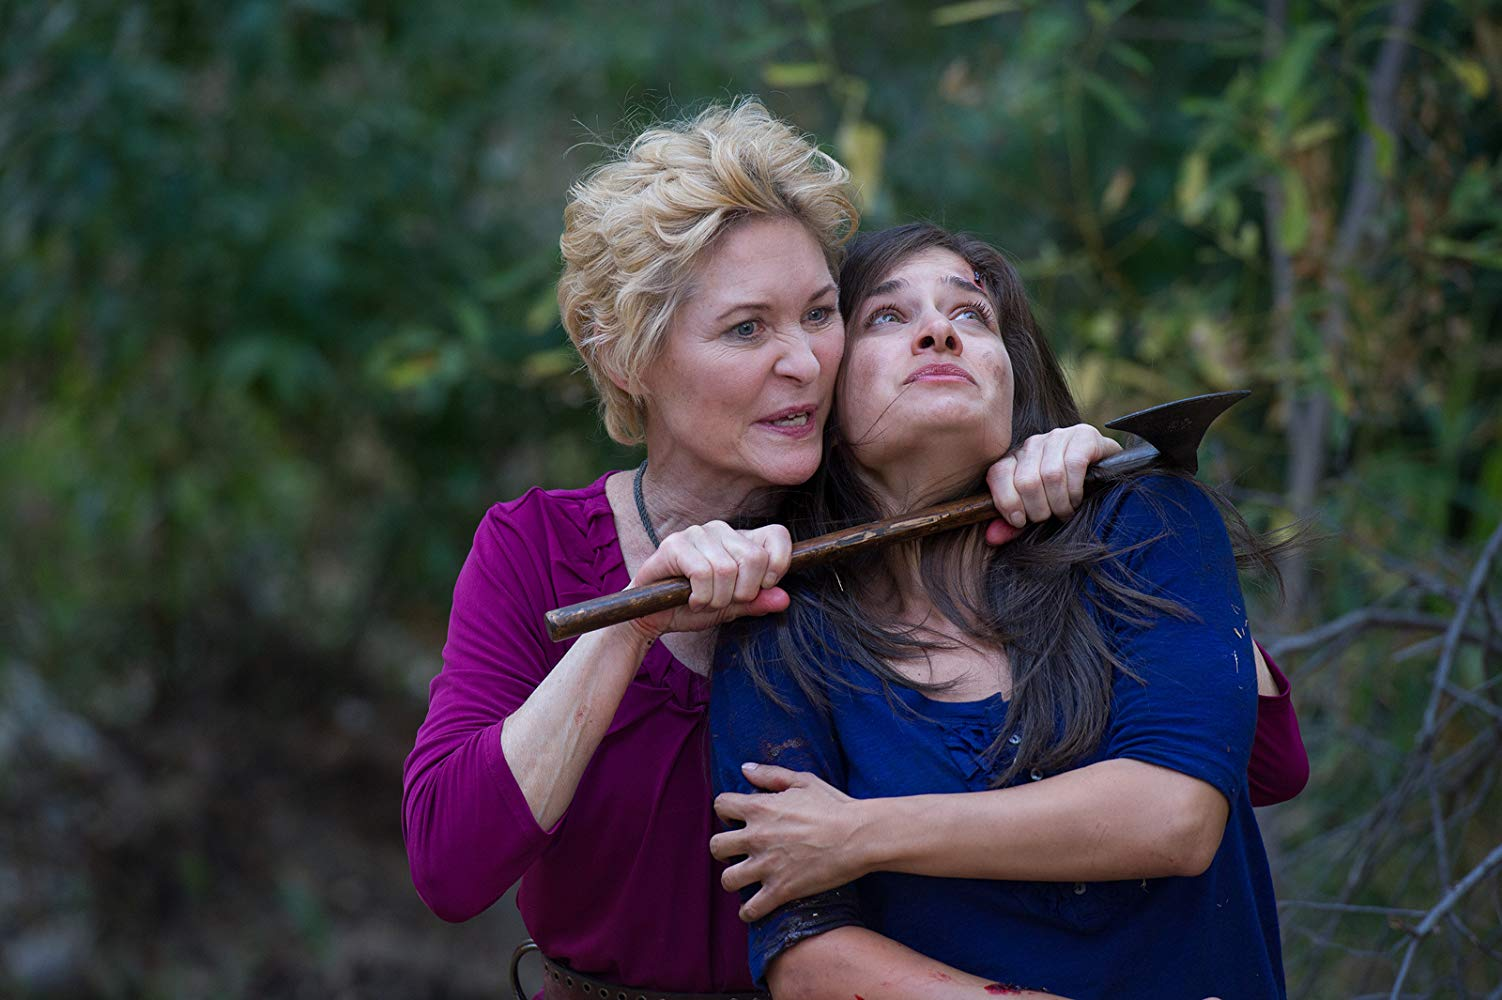 Lilith (Dee Wallace) threatens Gretel (Stephanie Greco) in Hansel and Gretel (2013)